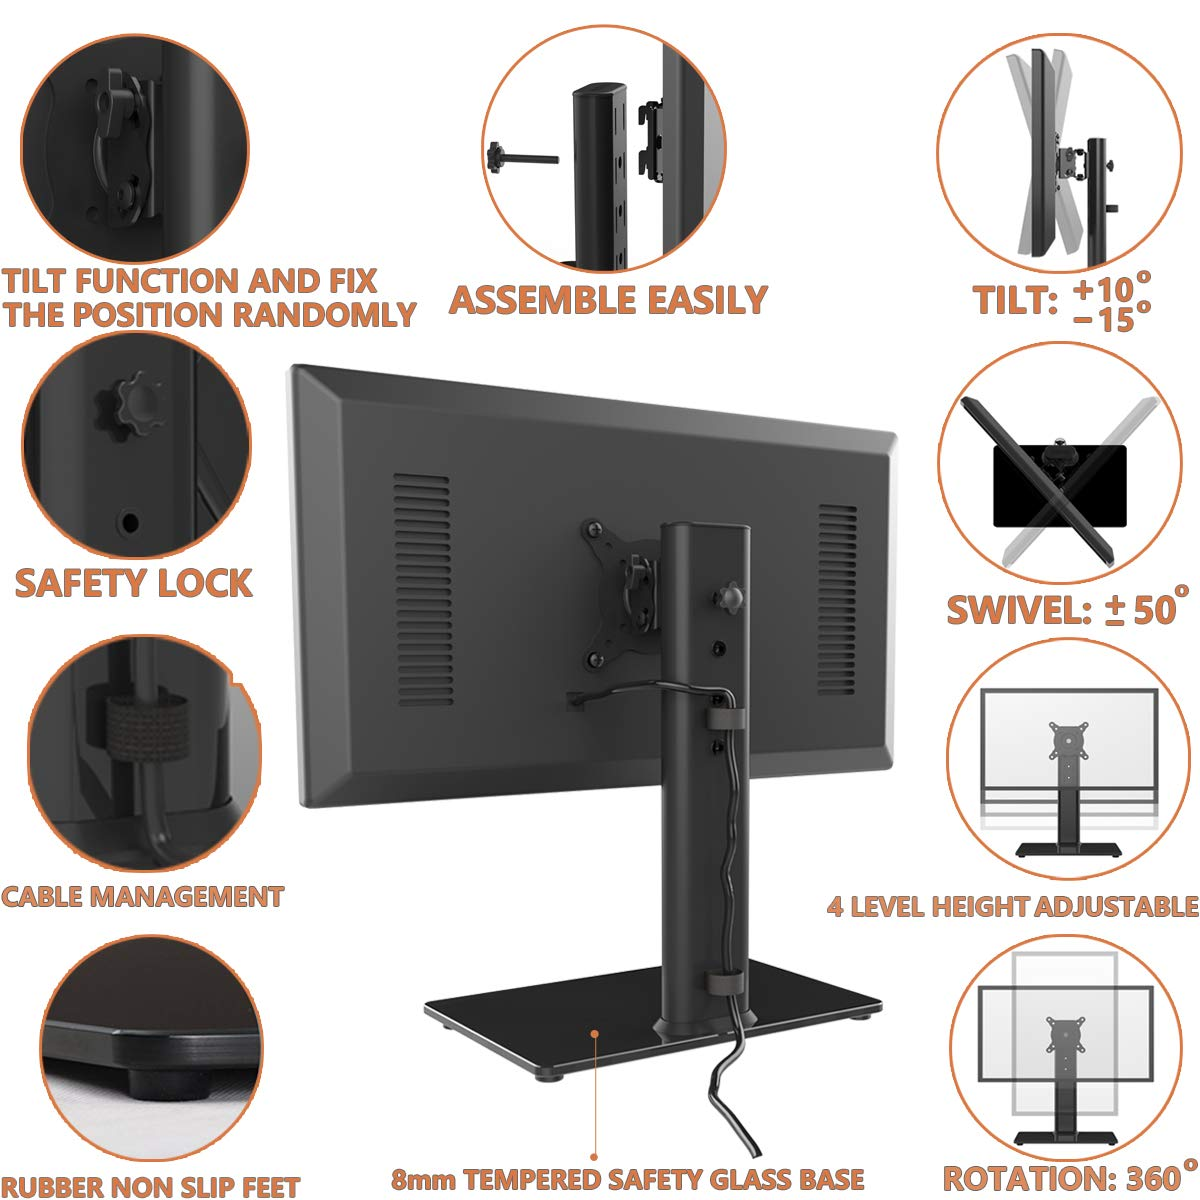 Single LCD Computer Monitor Free-Standing Desk Stand Riser for 13 inch to 32 inch Screen with Swivel, Height Adjustable, Rotation, Holds One (1) Screen up to 77Lbs(HT05B-001) by Hemudu (Image #2)